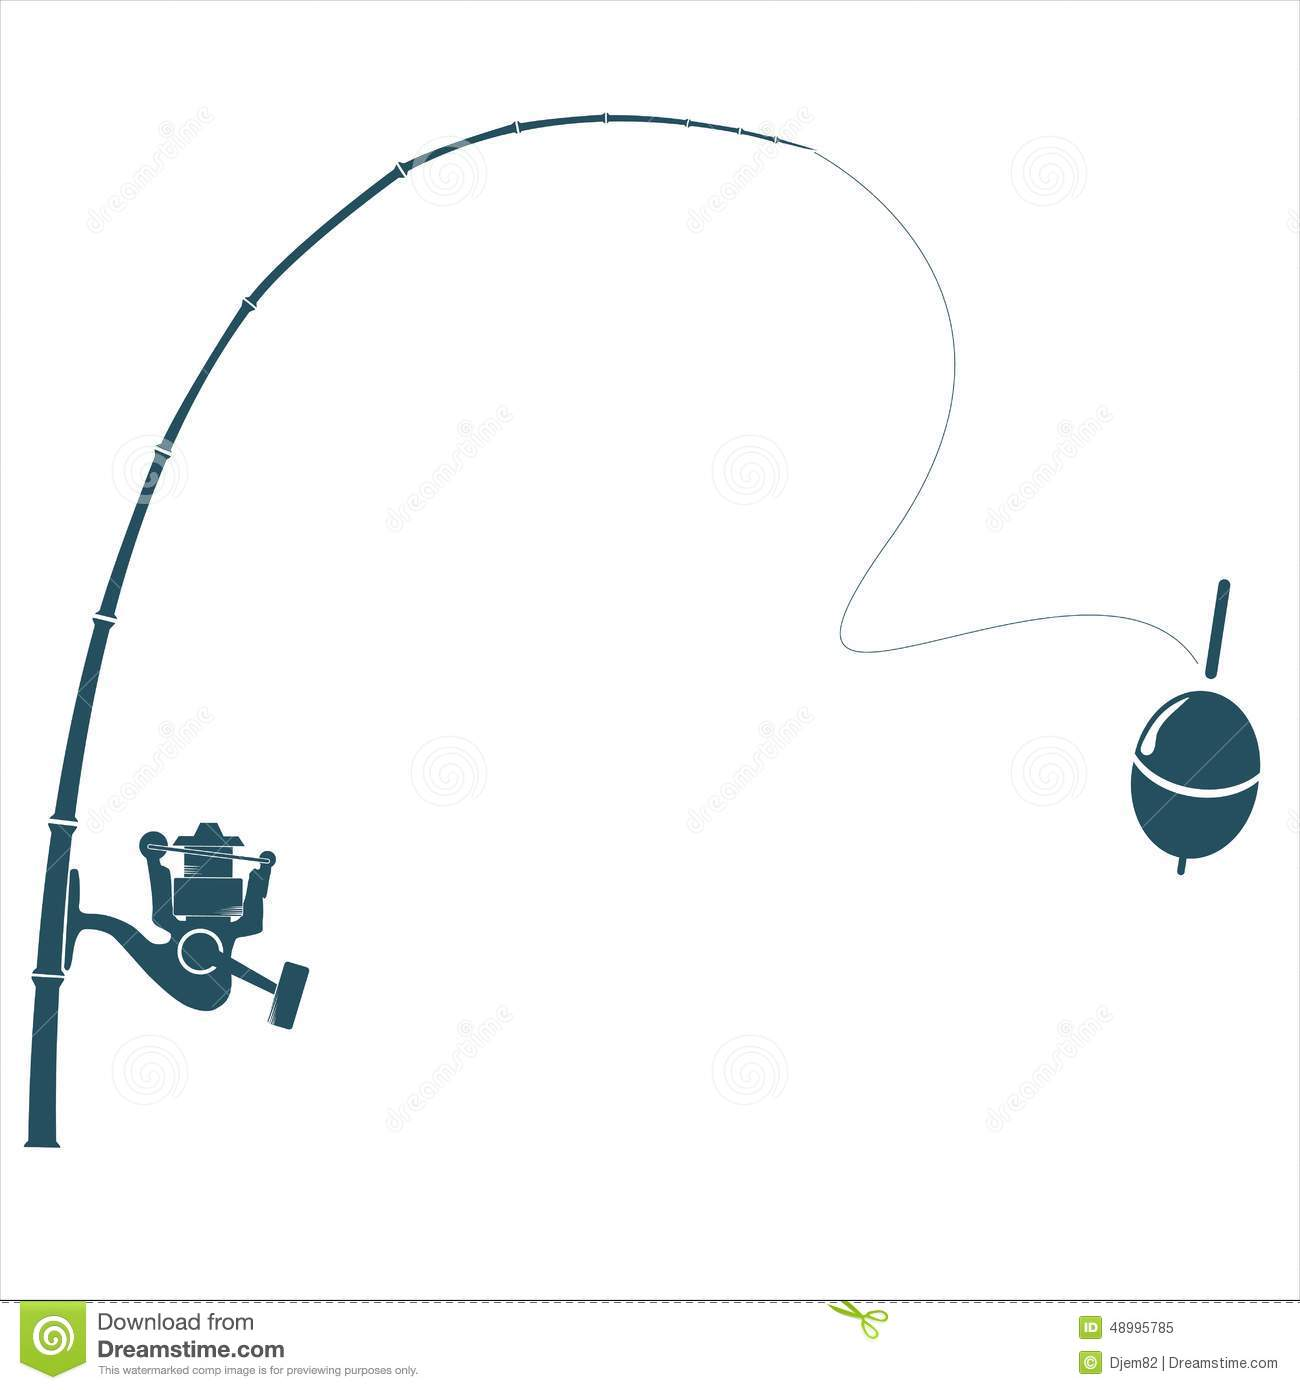 Fishing Rod On The White Backdrop. Stock Vector - Image: 48995785